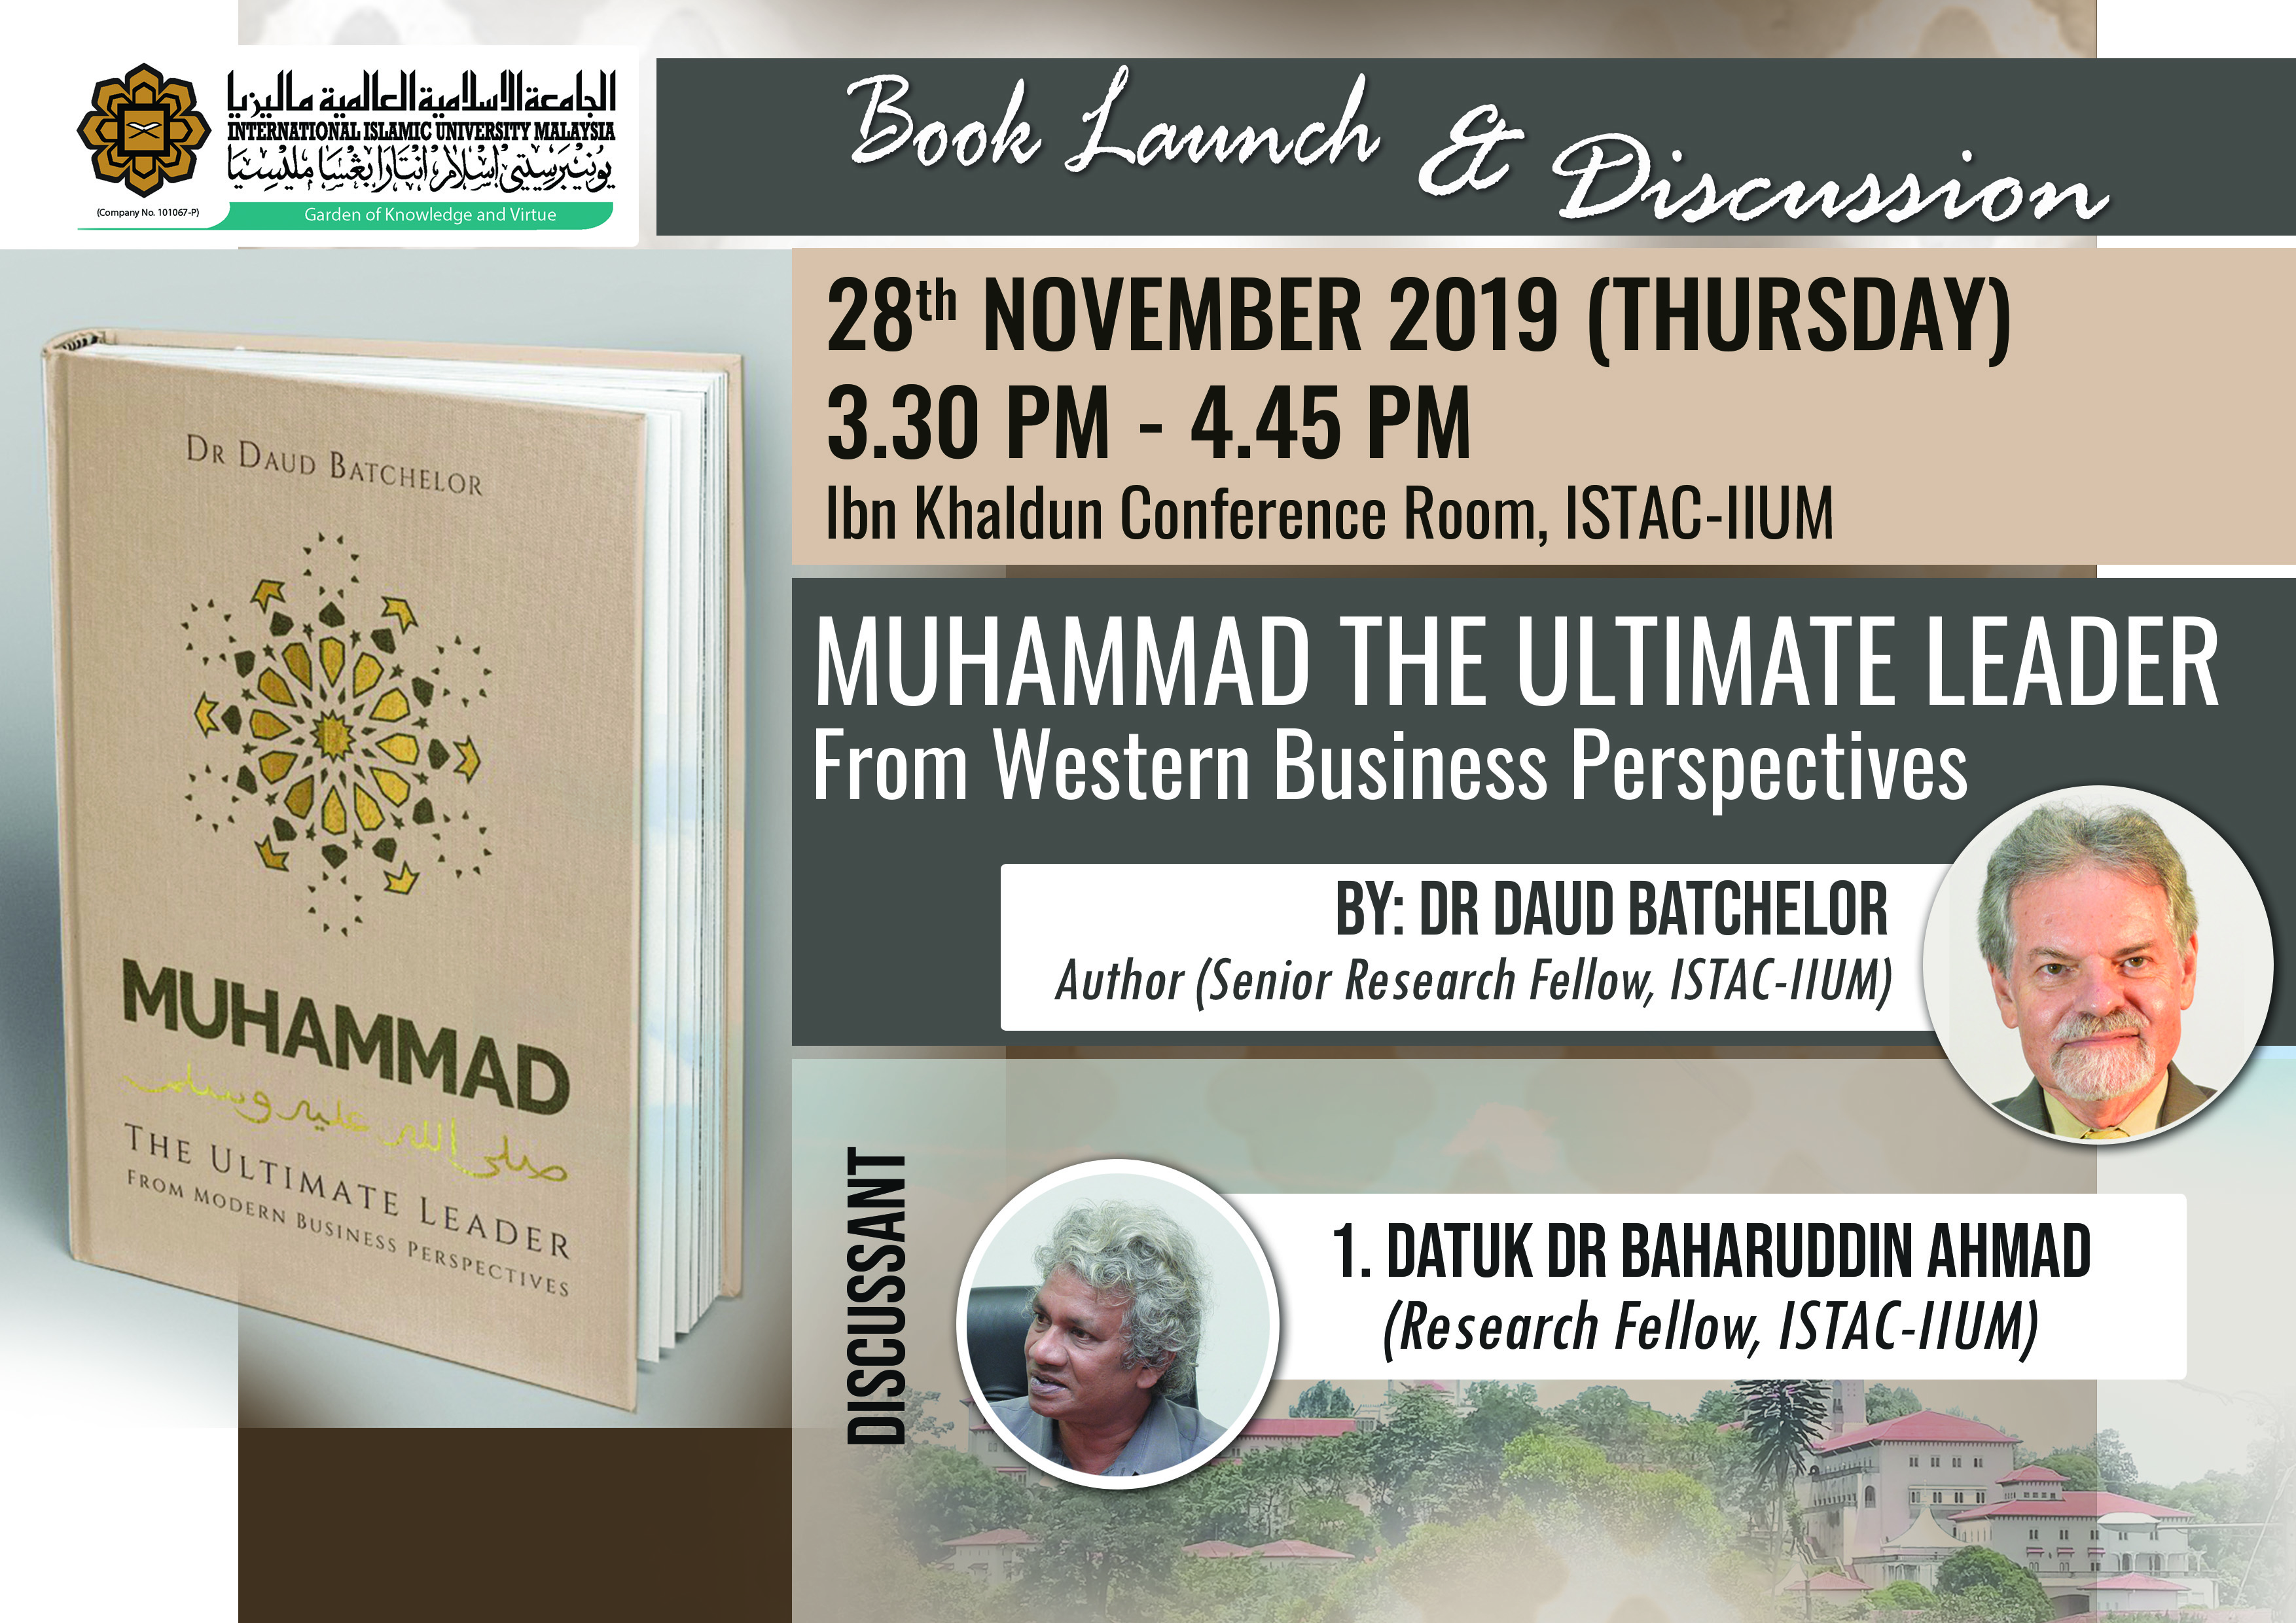 BOOK LAUNCH AND DISCUSSION - MUHAMMAD THE ULTIMATE LEADER From Western Business Perspectives